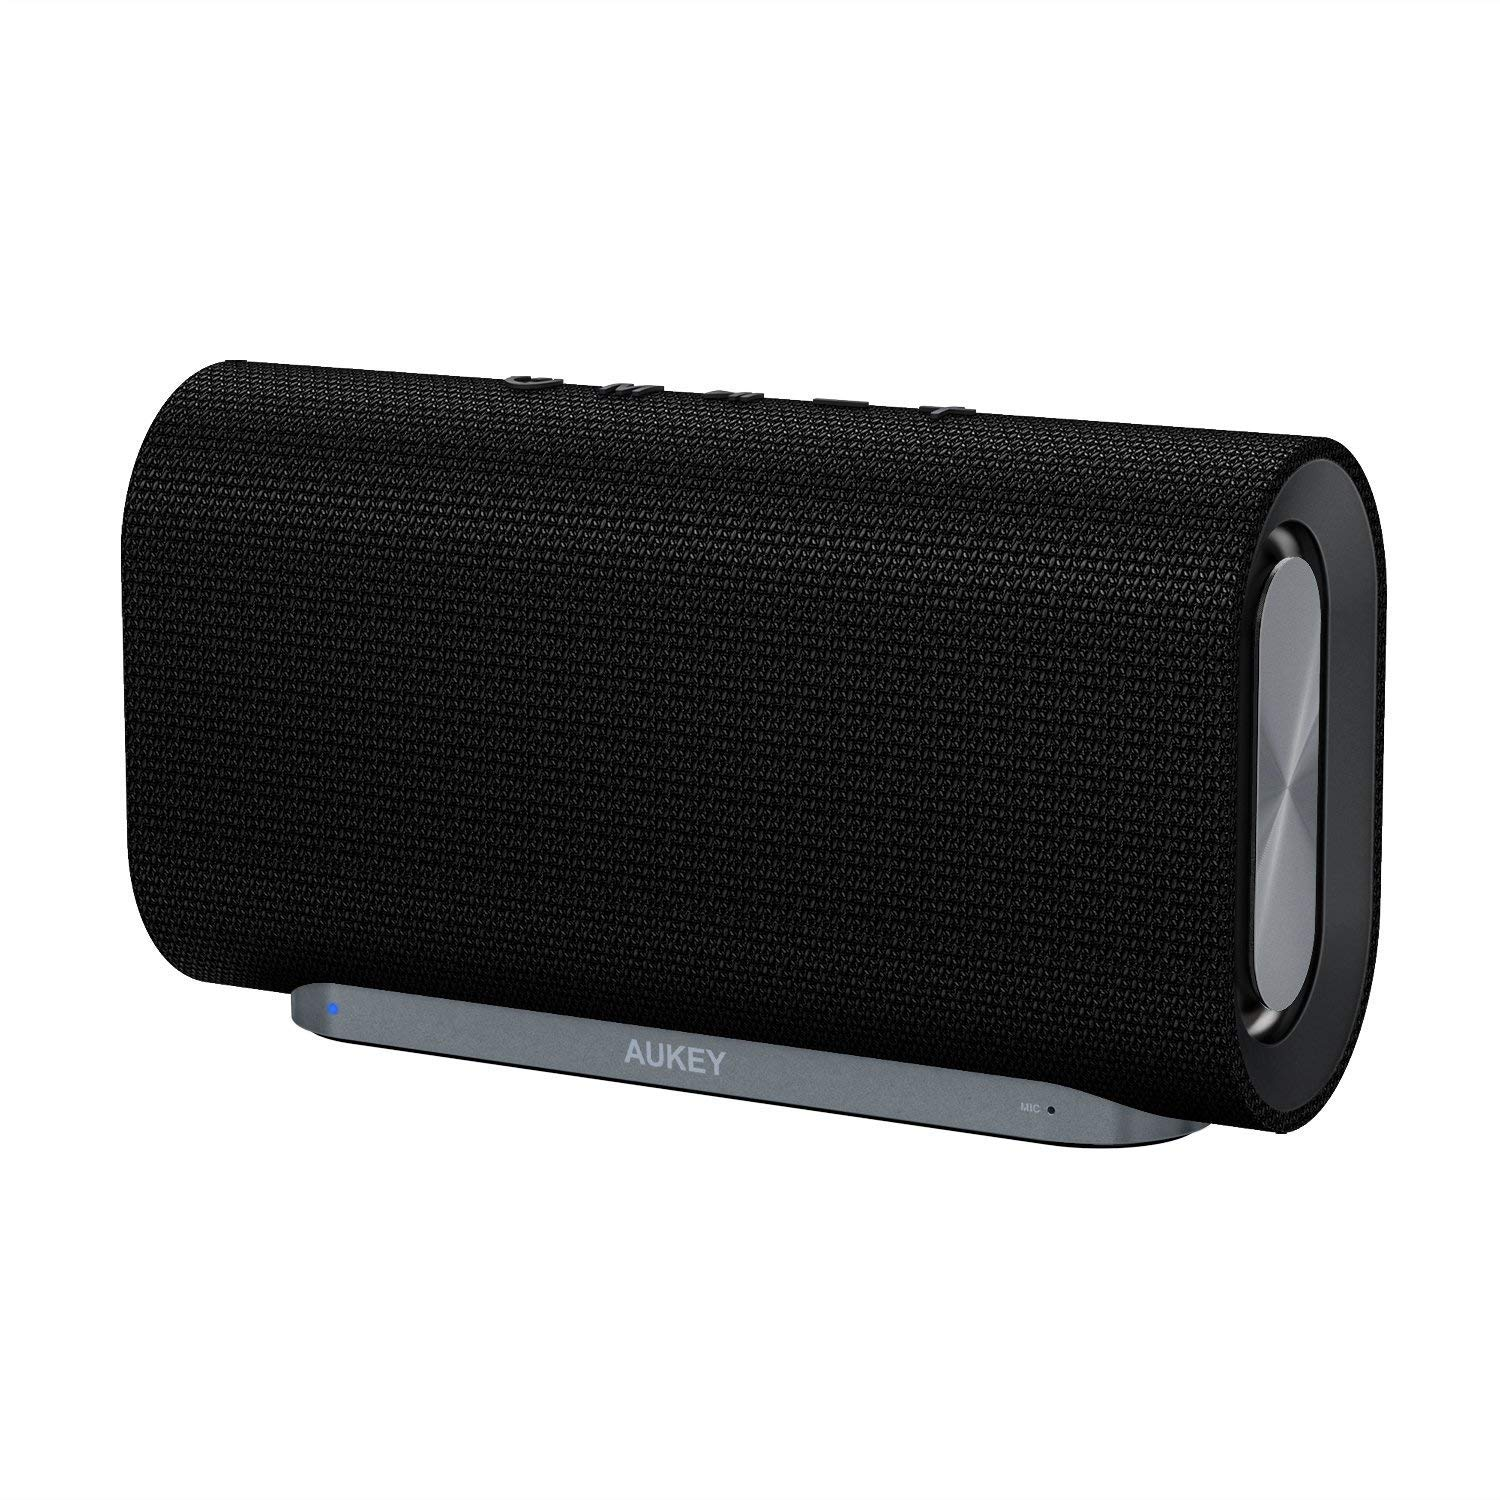 Upgraded Enhanced Bass with Dual Passive Radiators//Subwoofers and Woven Fabric Surface for Echo Dot Android Phones and More AUKEY Eclipse Wireless Speaker 20 W with 12 Hours Playtime